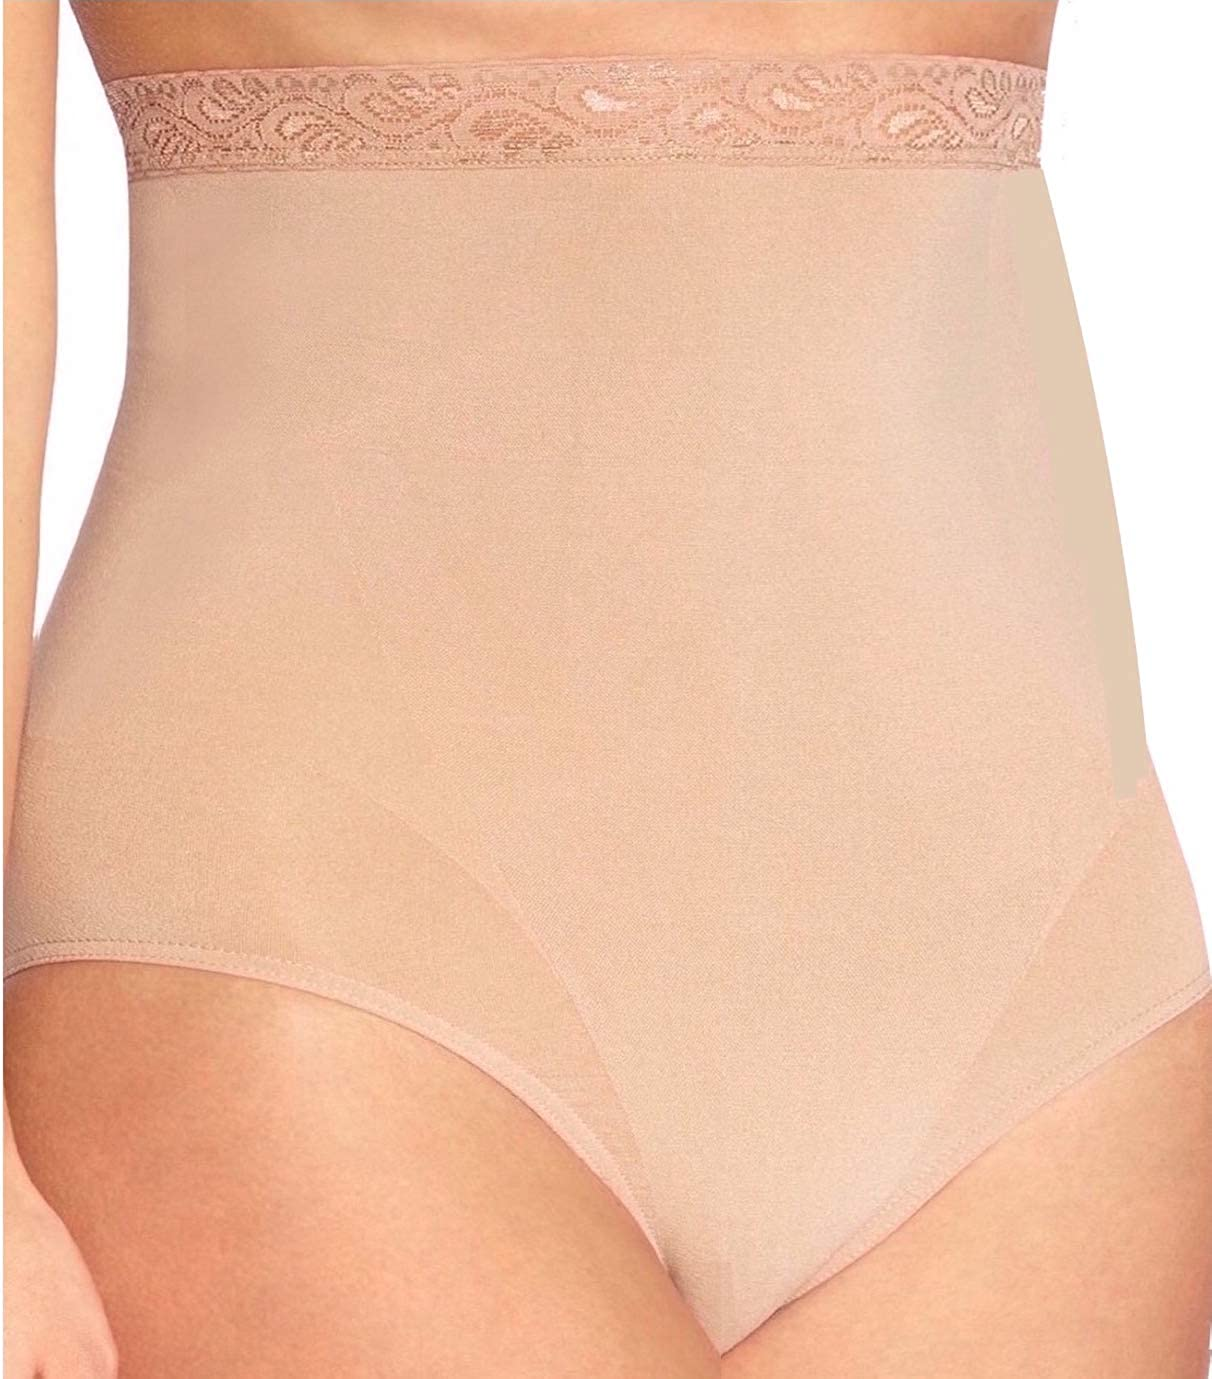 Body Wrap Plus Size High Waist Seamless Panty Brief Firm Control Shapewear Women Black & Beige